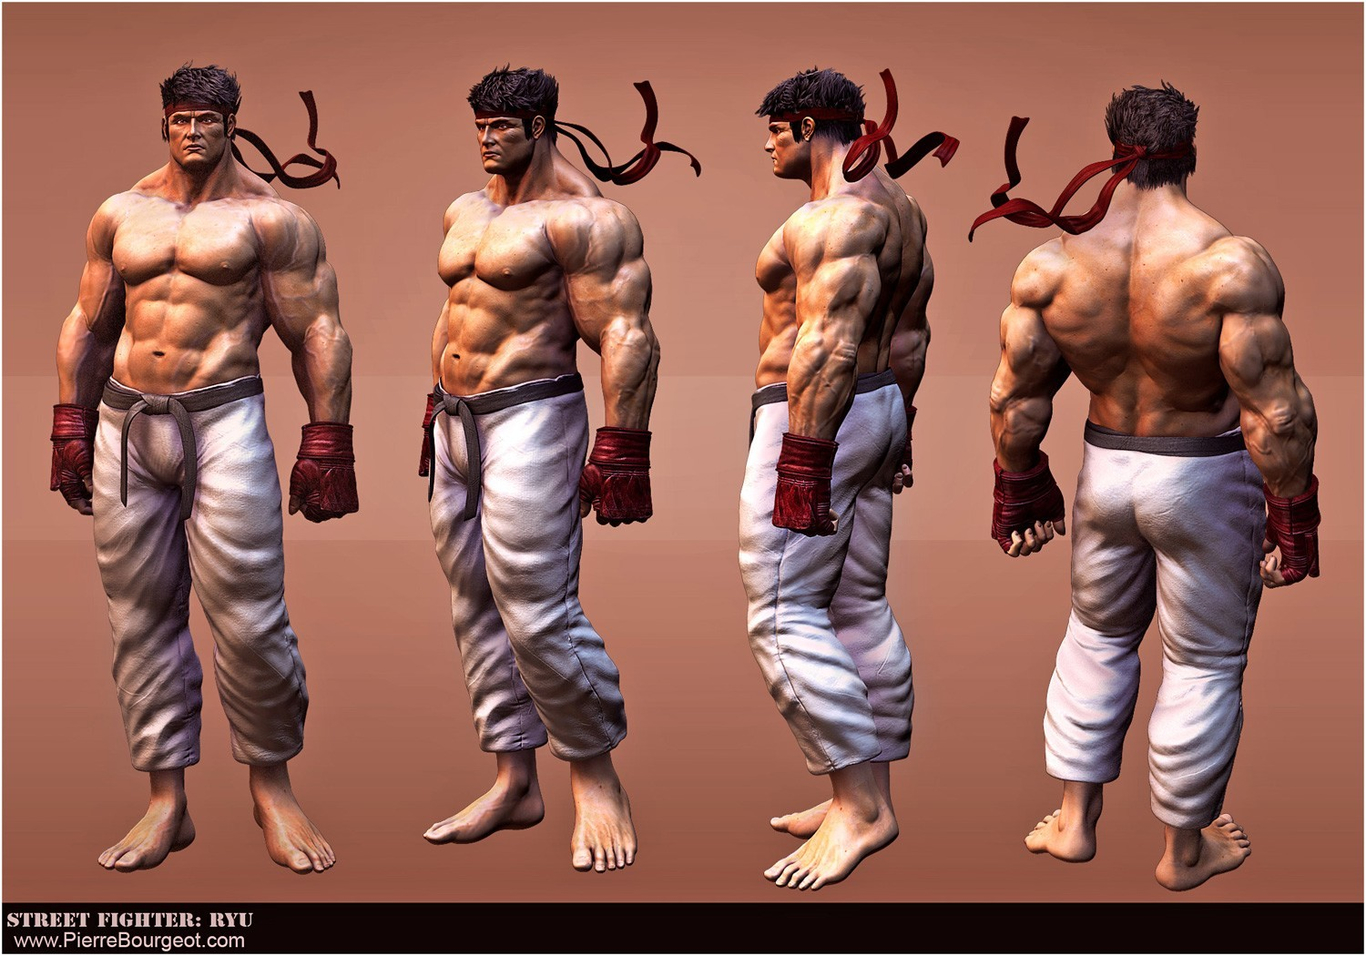 Blacknull street fighter ryu 1 254b807a qyvh